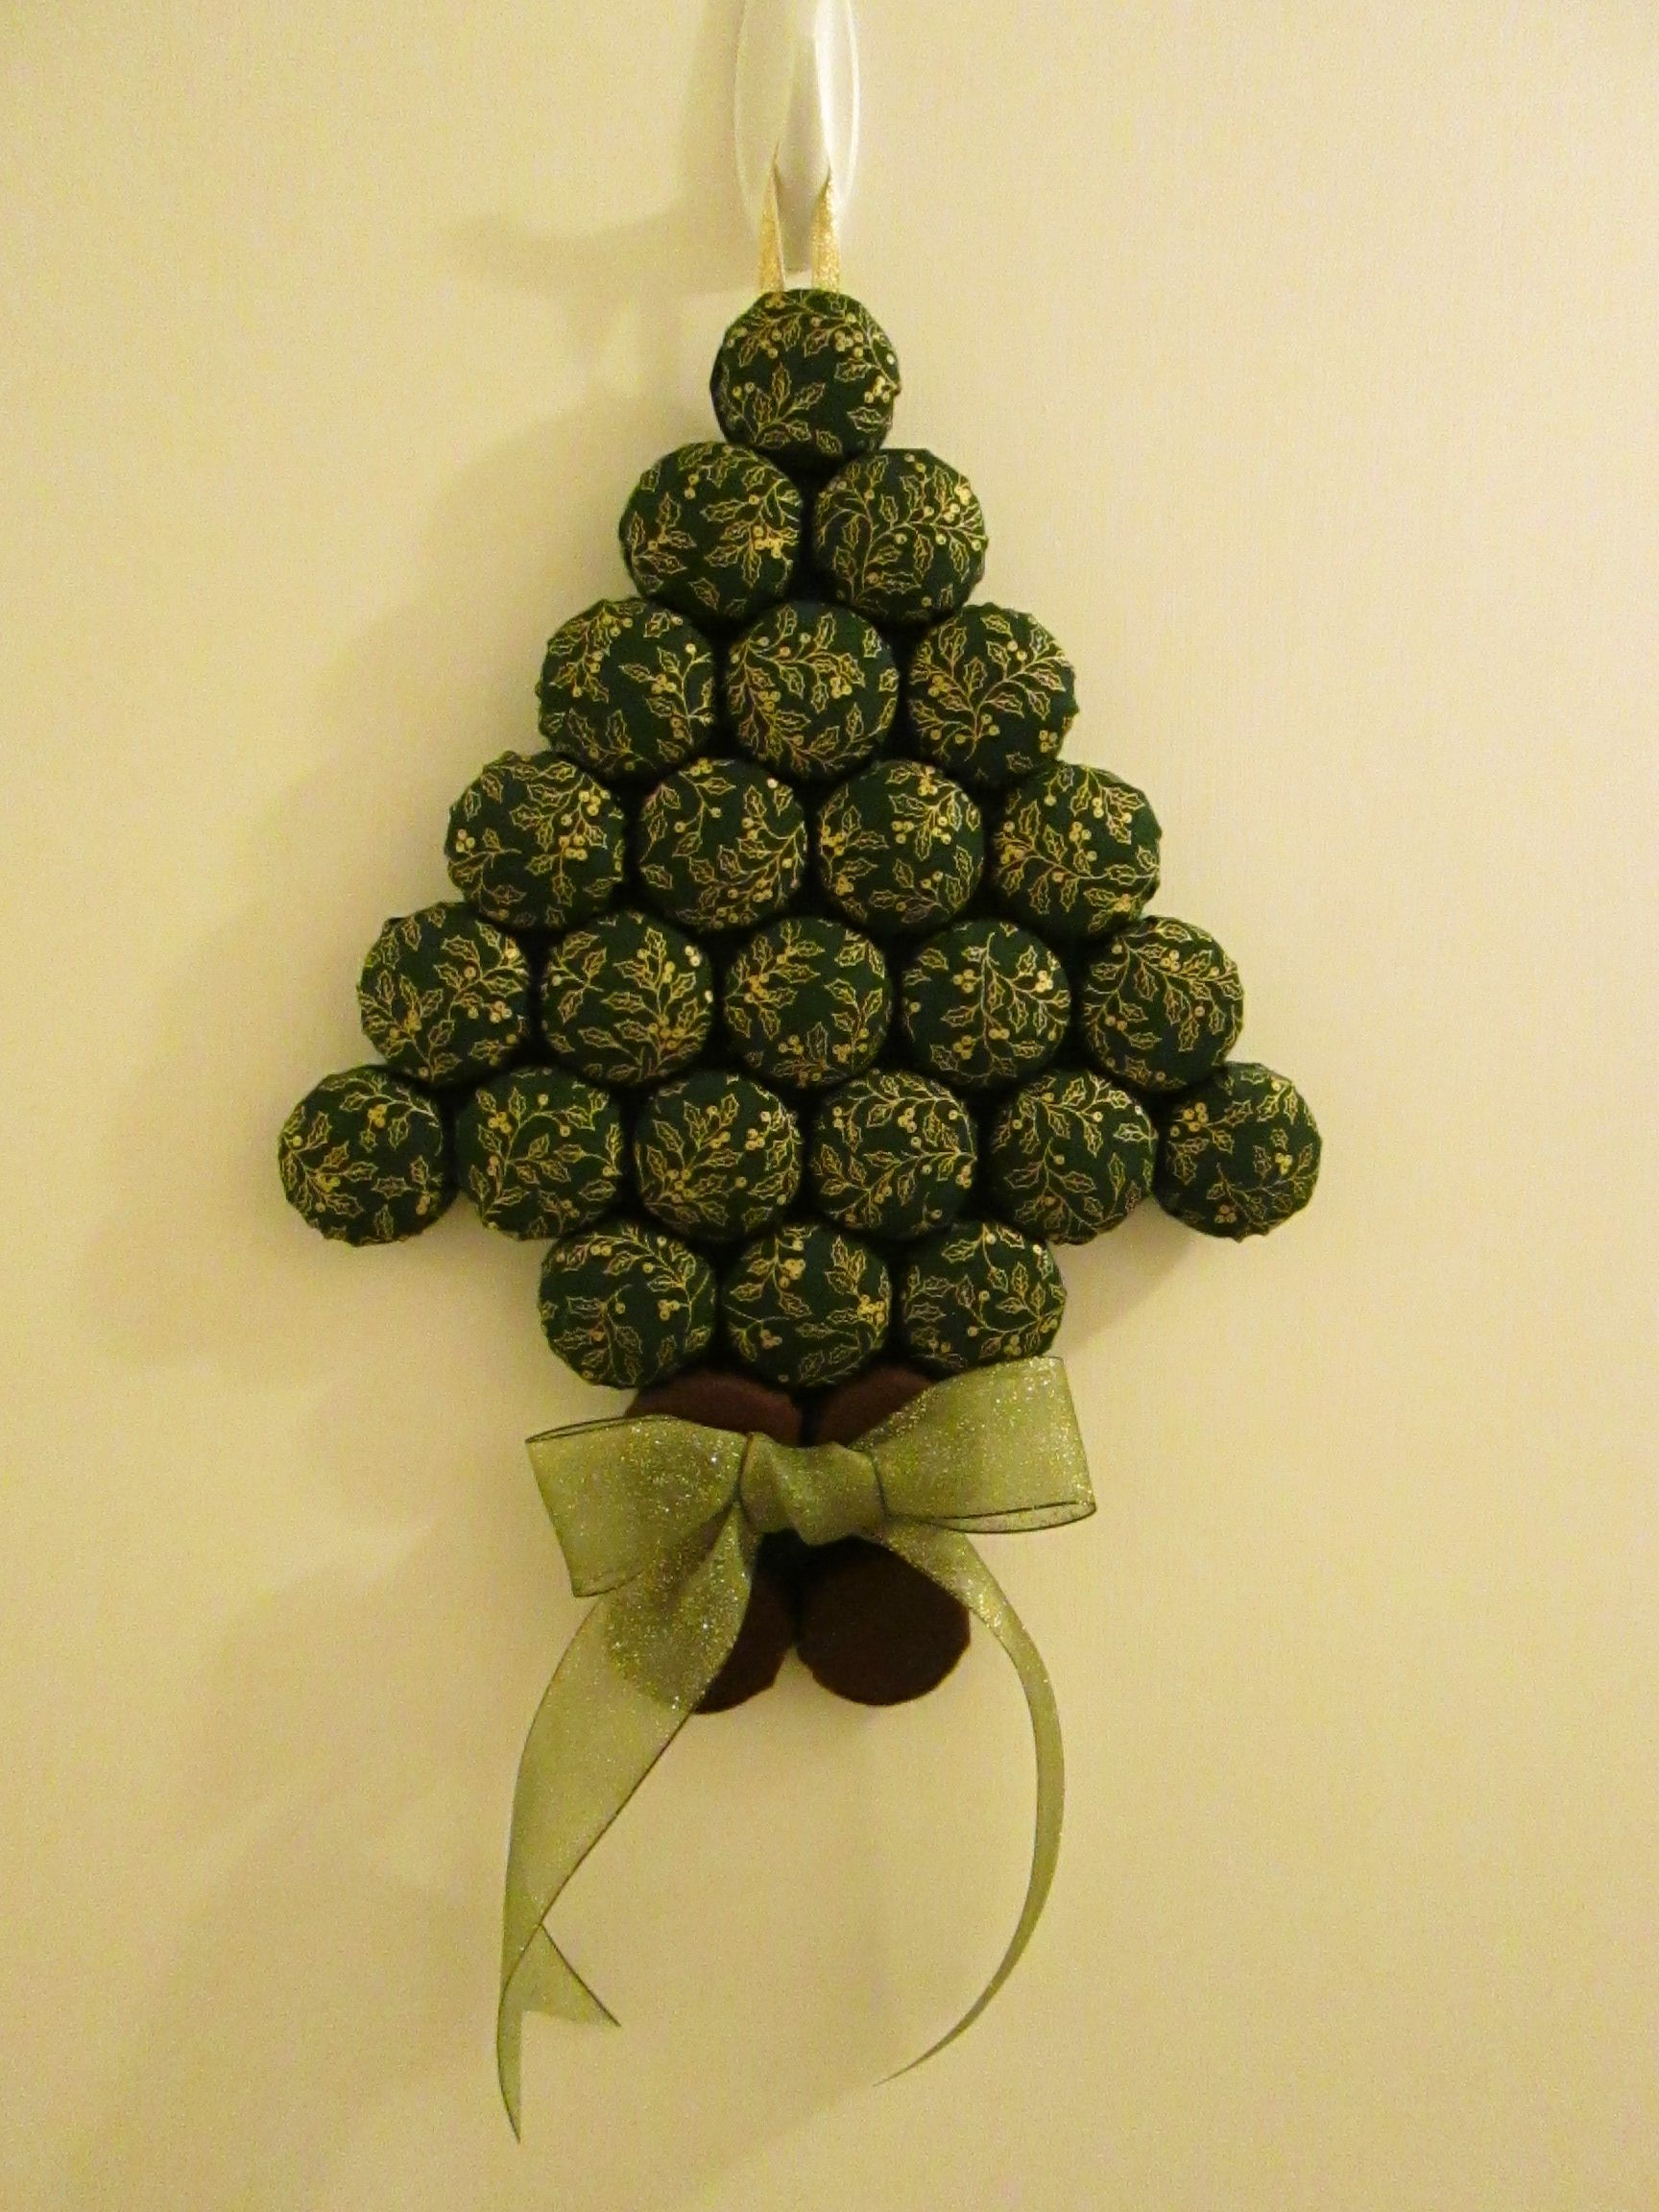 milk bottle top tree ---- HEY HEY!!! For more COOL MINECRAFT stuff ...